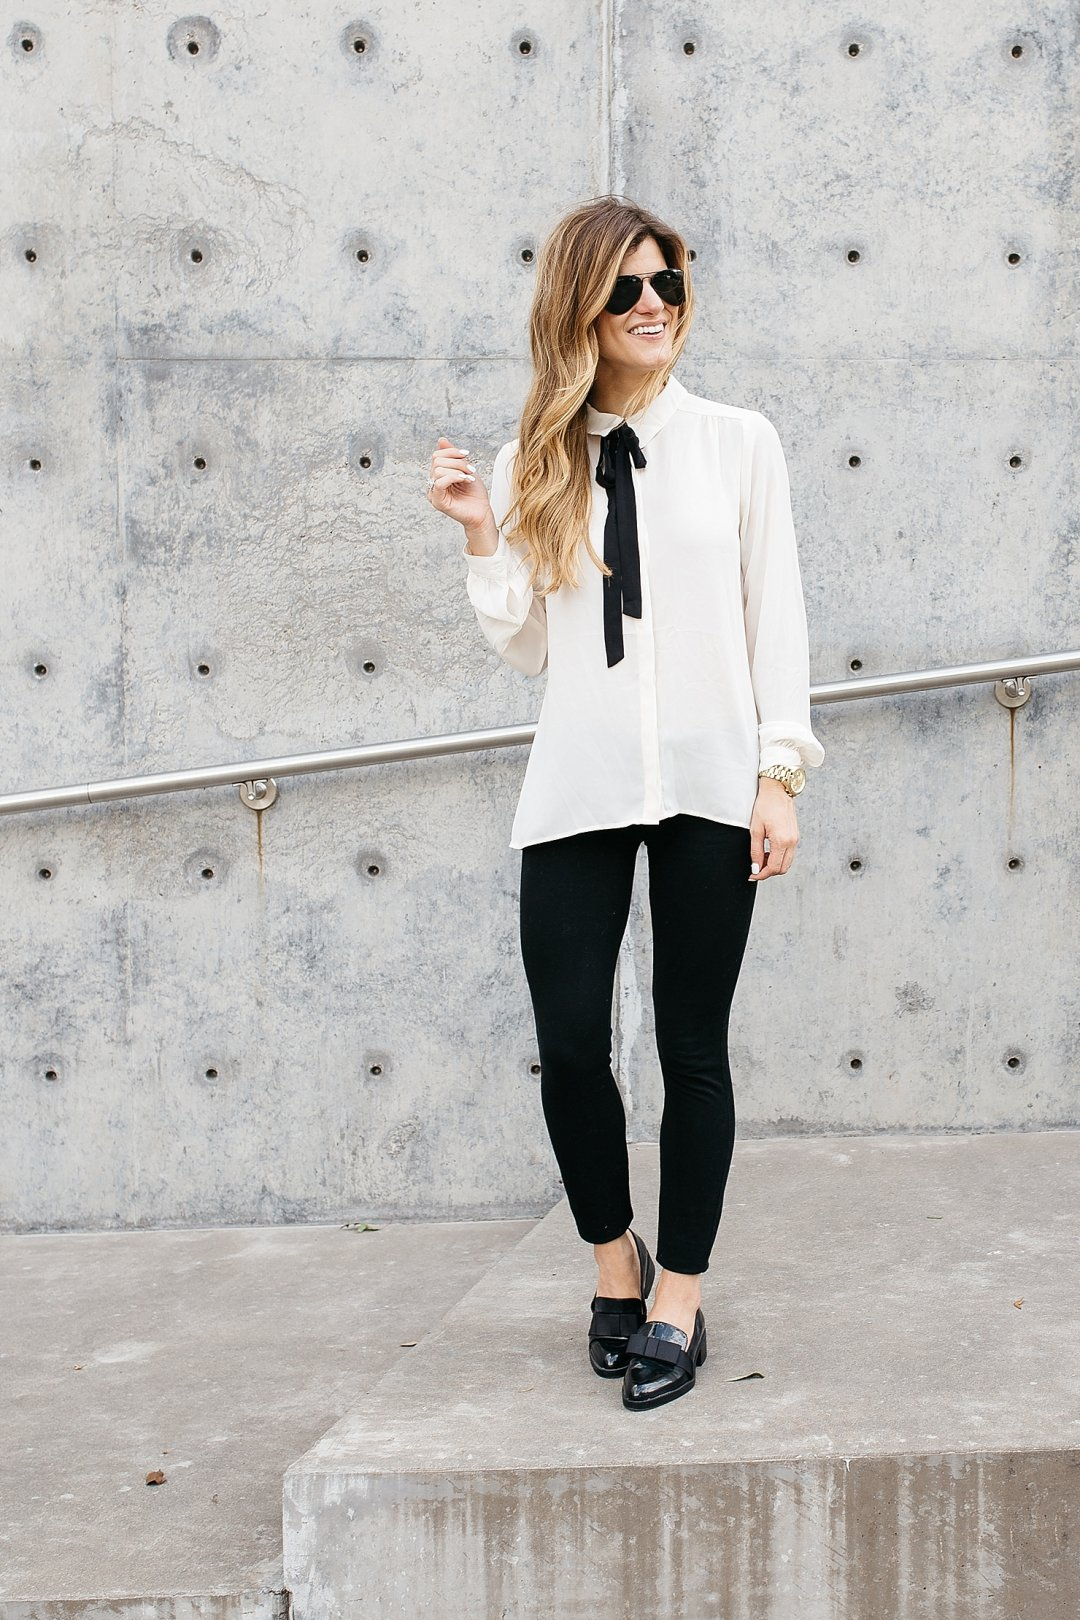 Outfit Business Casual Fall Business Casual Outfit Chic Black White Look For Work